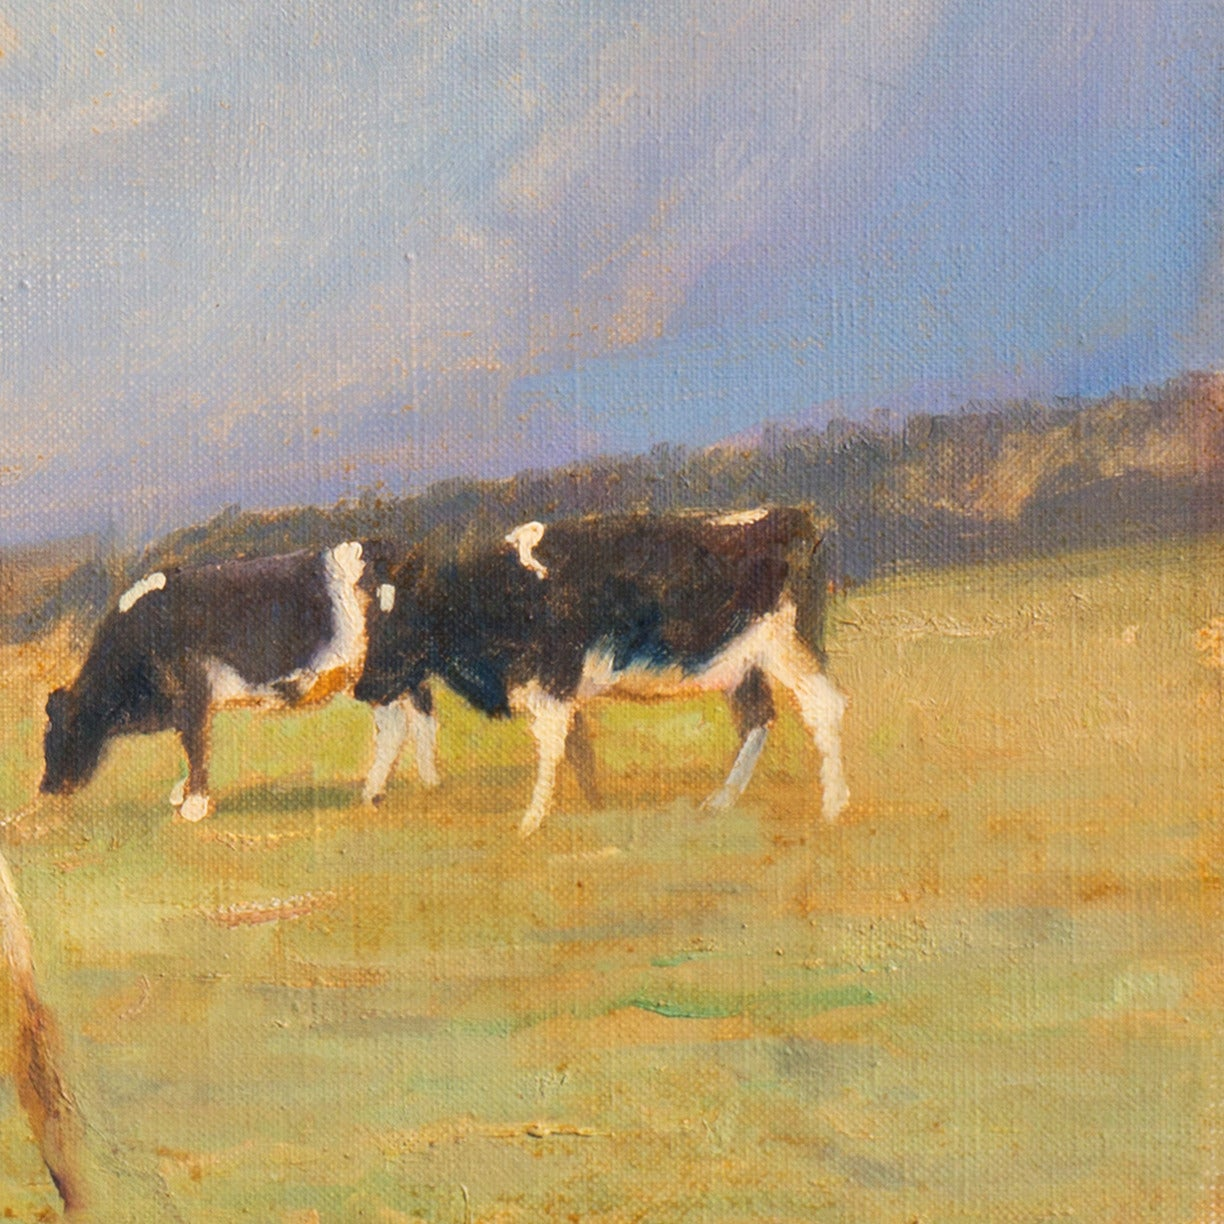 A light-filled, panoramic landscape showing Holstein cattle grazing in a grassy field beneath sun-lit clouds.  Signed lower right, 'G. Bundgaard' for Gunnar Bundgaard (Danish, 1920-2005) and dated '57'.  A listed Danish still-life and animal